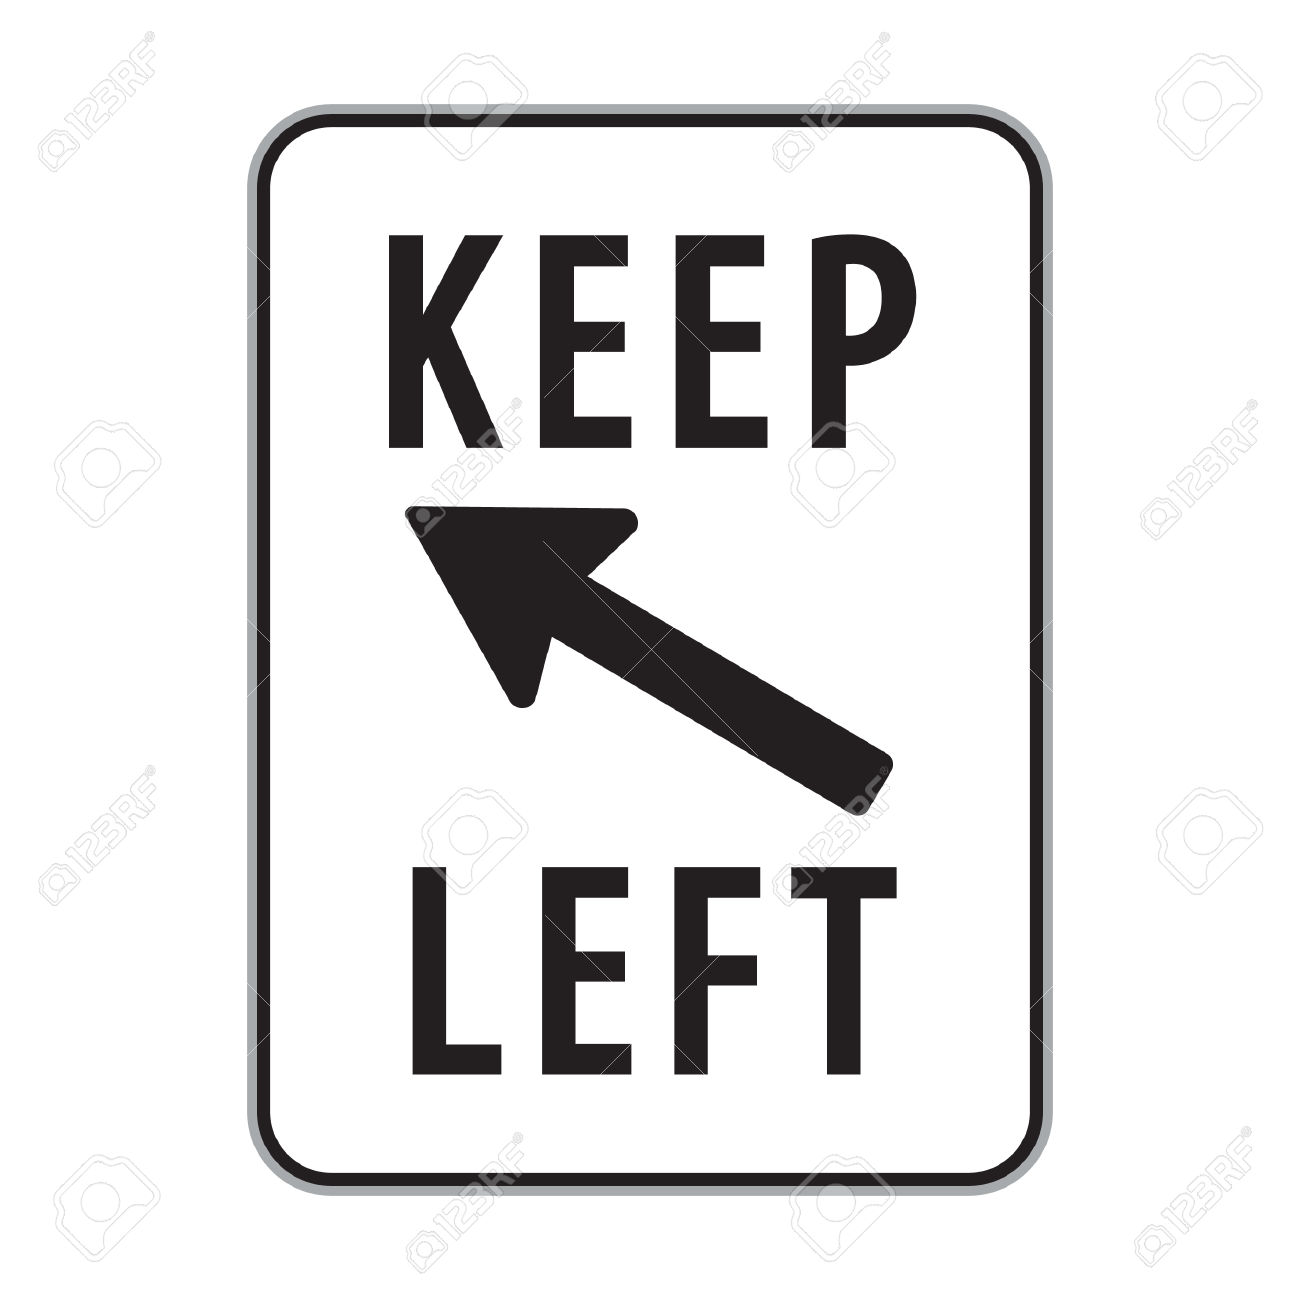 Keep Left Sign Royalty Free Cliparts, Vectors, And Stock.